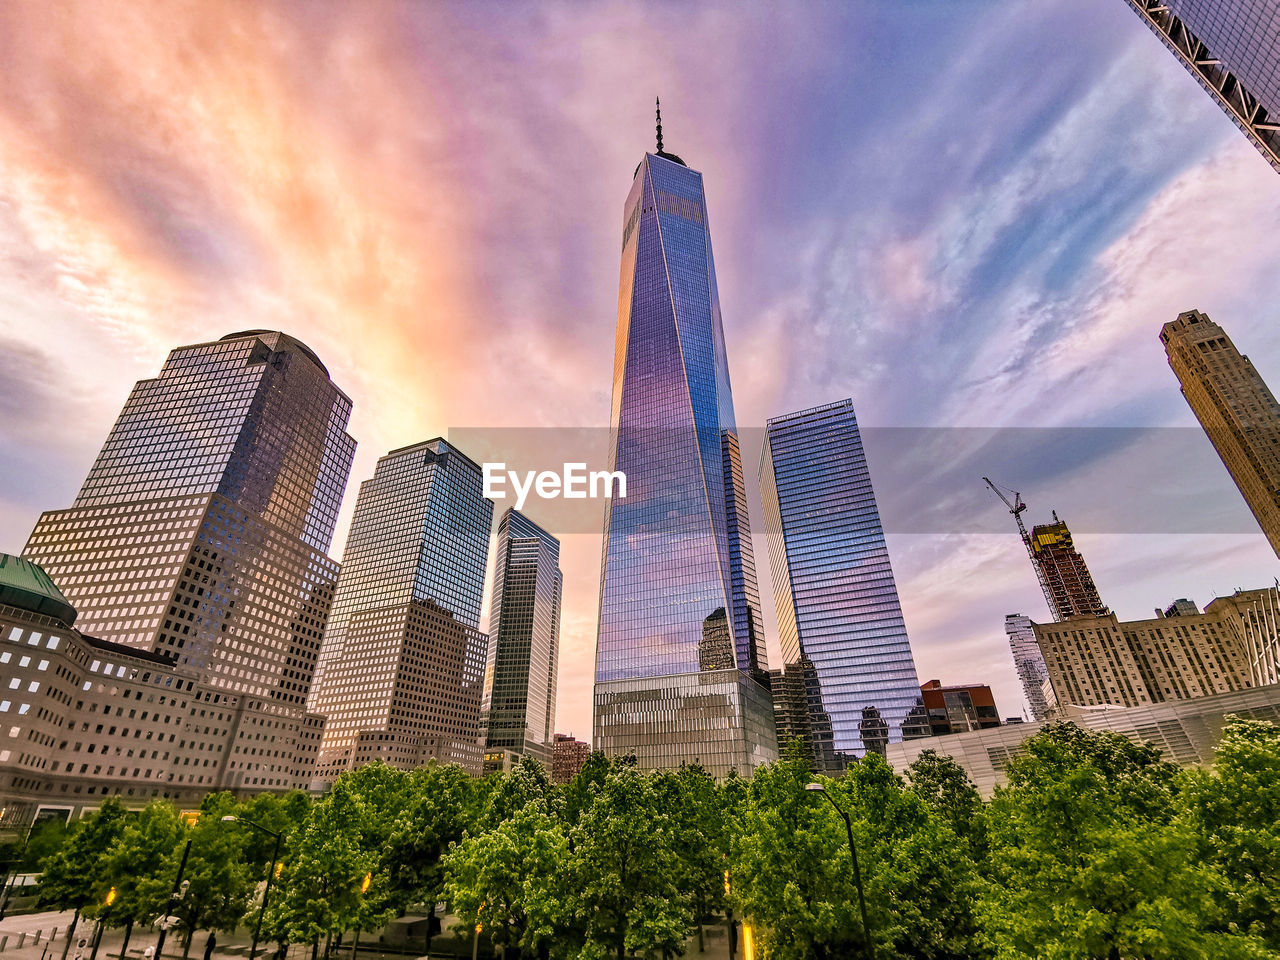 building exterior, architecture, sky, built structure, office building exterior, skyscraper, building, city, tall - high, cloud - sky, tower, modern, office, low angle view, nature, tree, plant, travel destinations, no people, cityscape, financial district, outdoors, spire